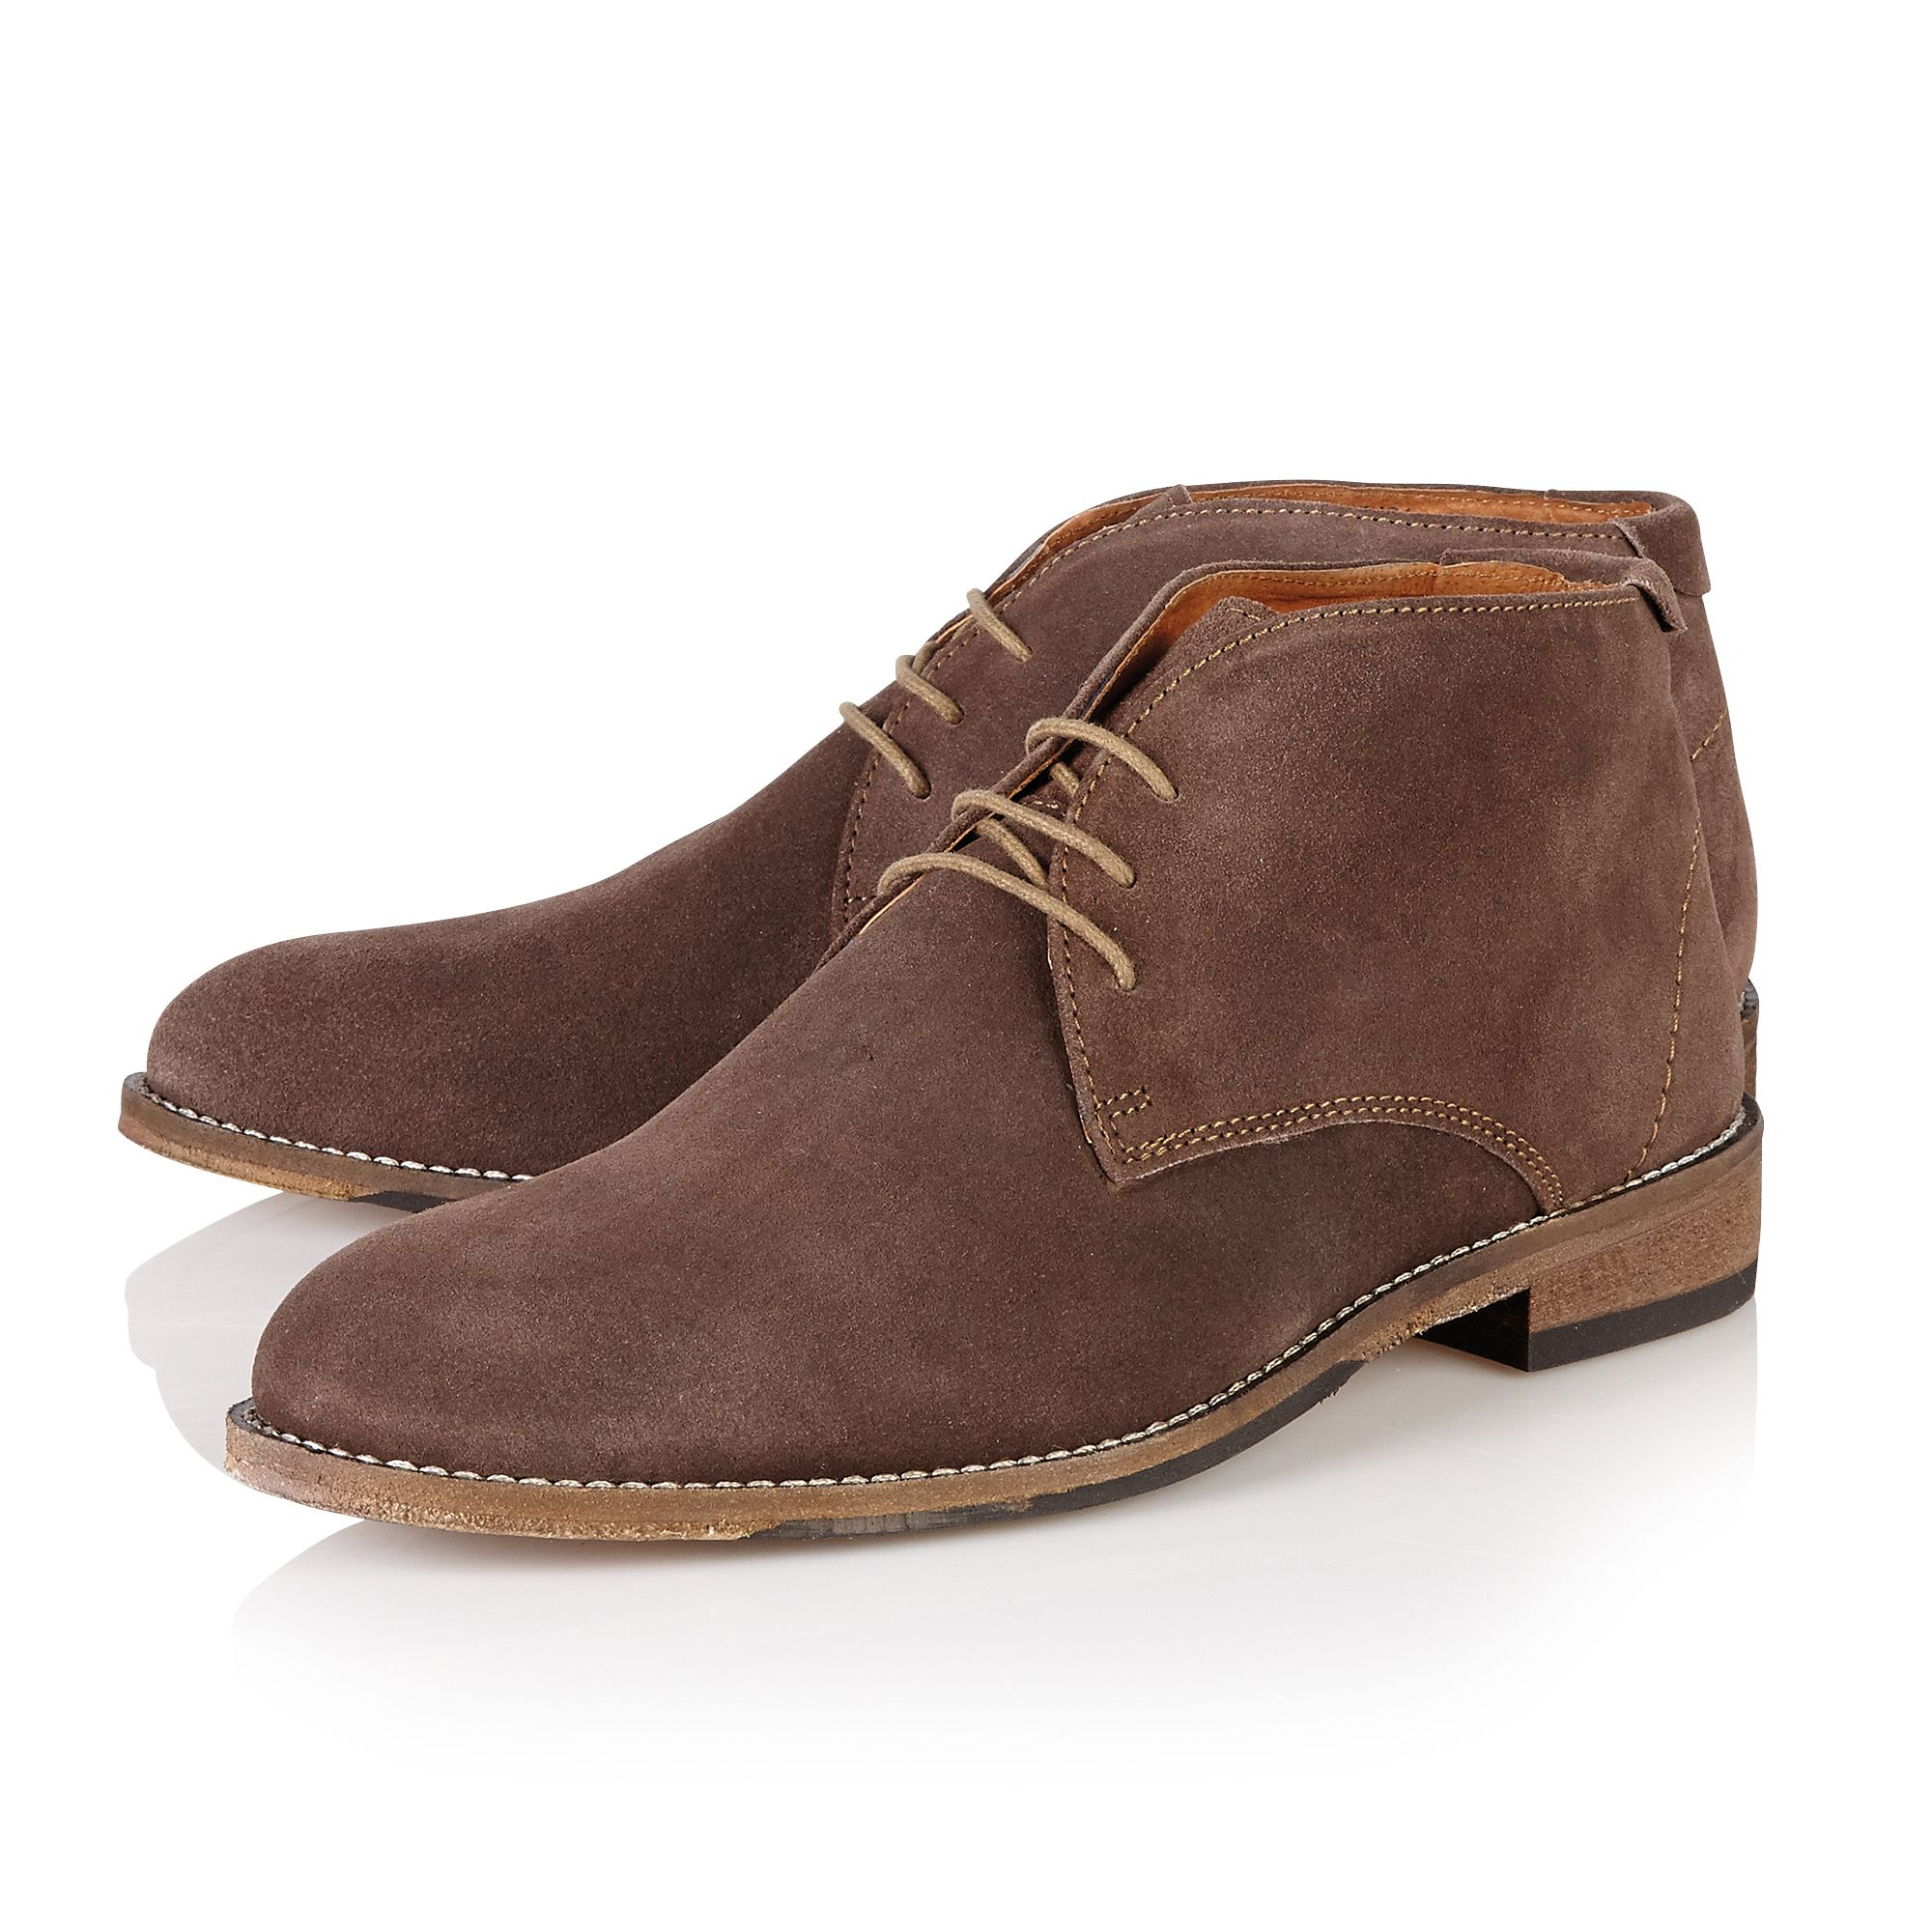 Abington mens ankle boots